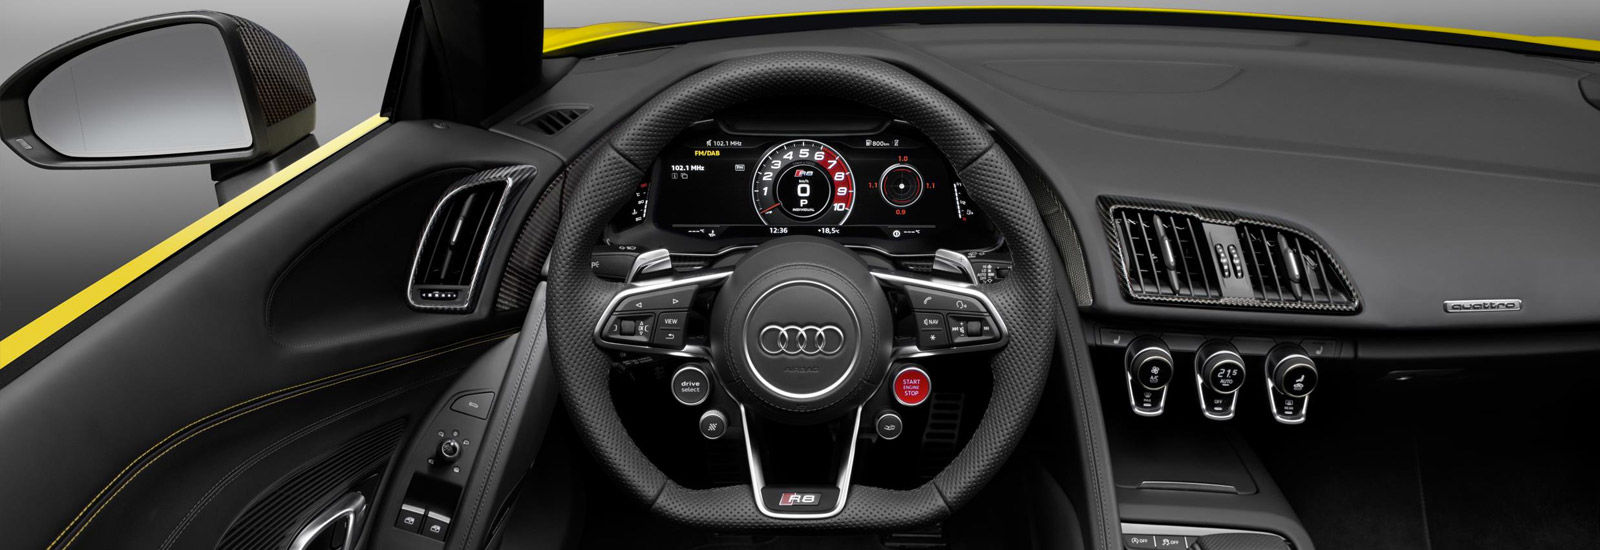 audi r8 convertible interior. audi r8 spyder v10 styling convertible interior